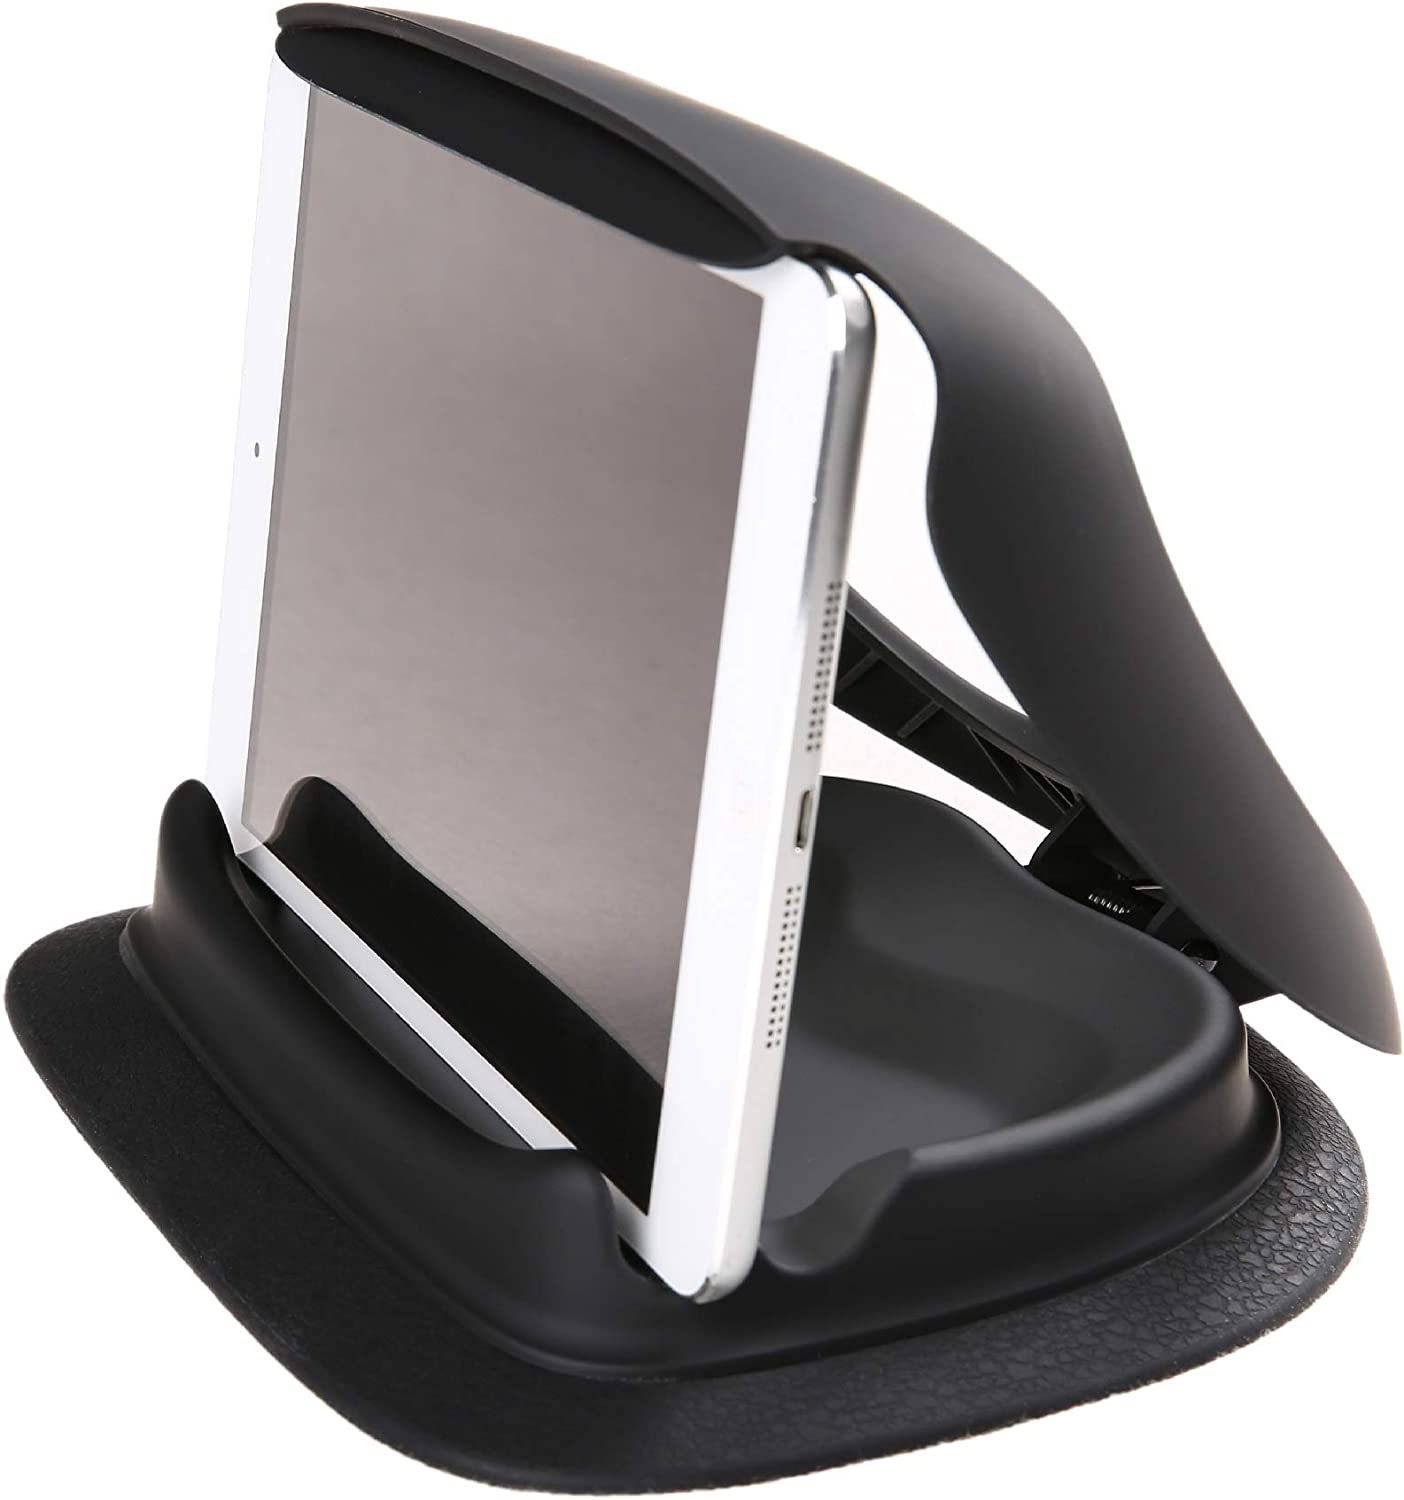 Navitech in Car Dashboard Friction Mount Compatible with The HP Pro Tablet 10 G1 EE